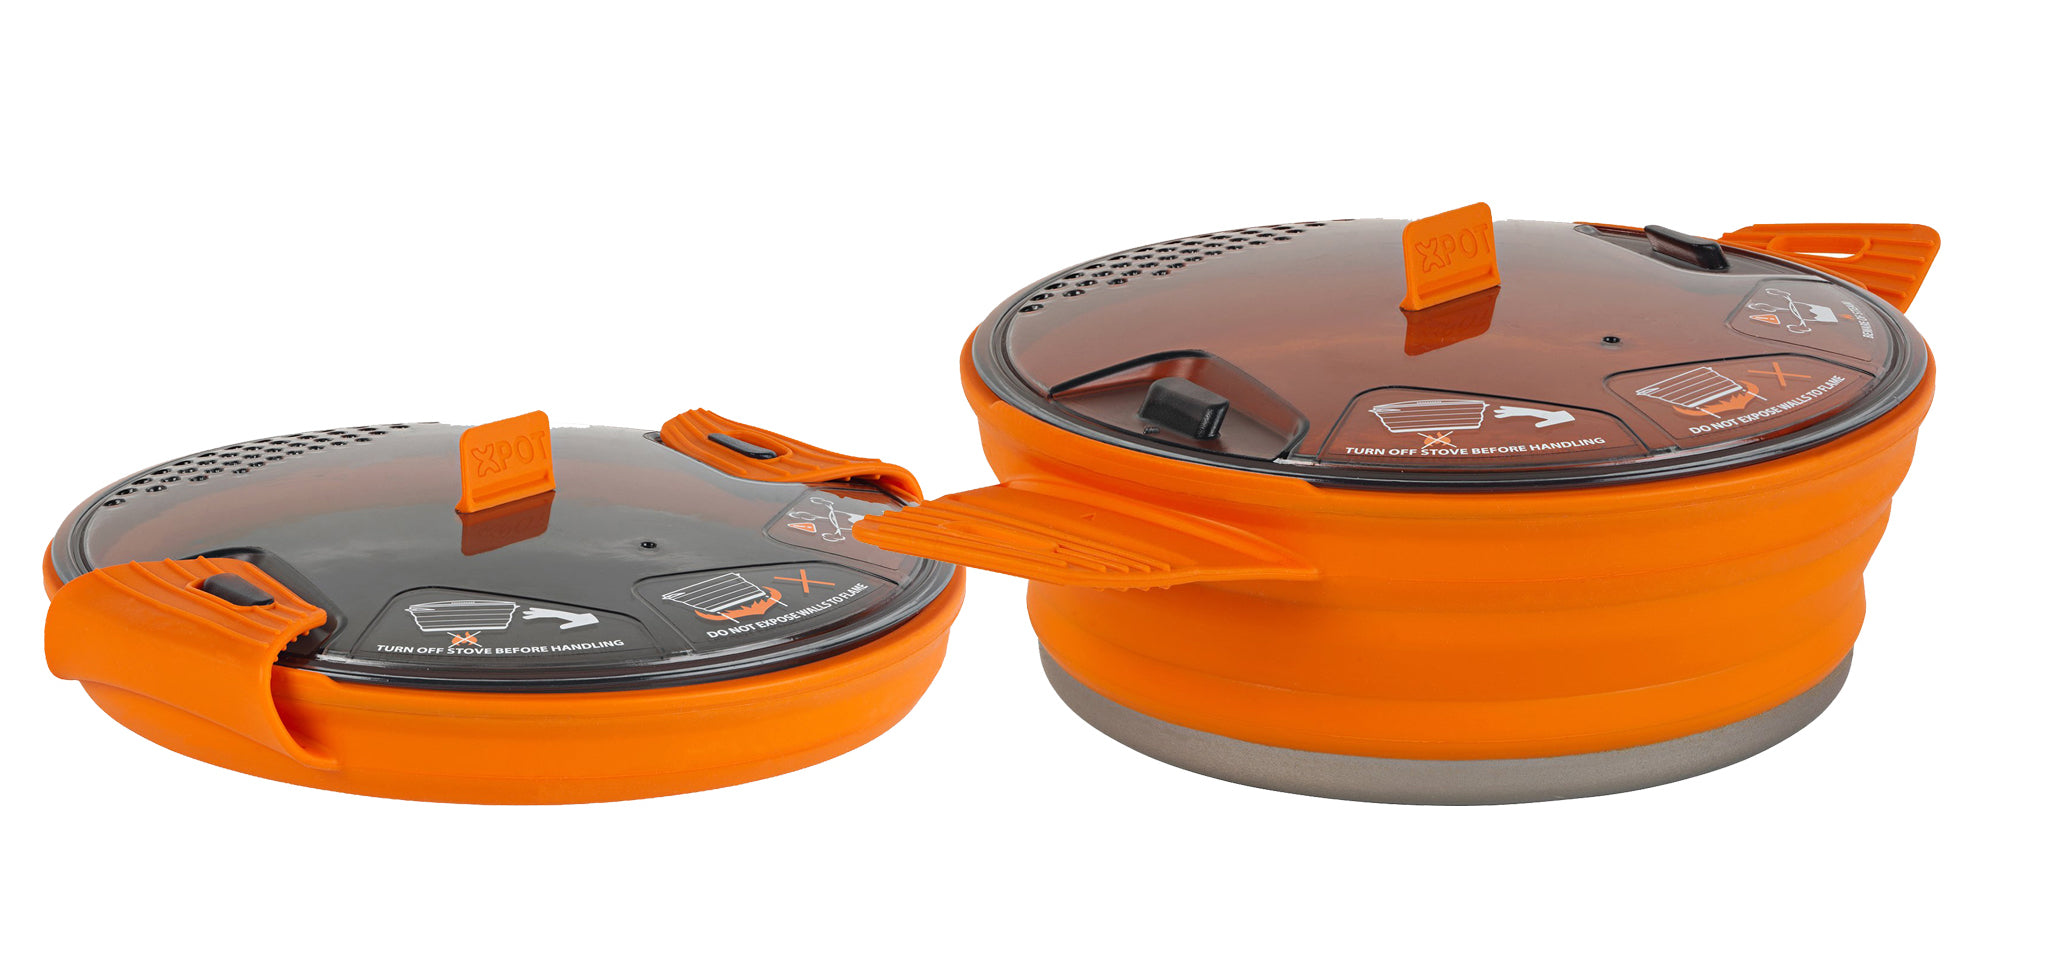 Portable camping essential for cooking